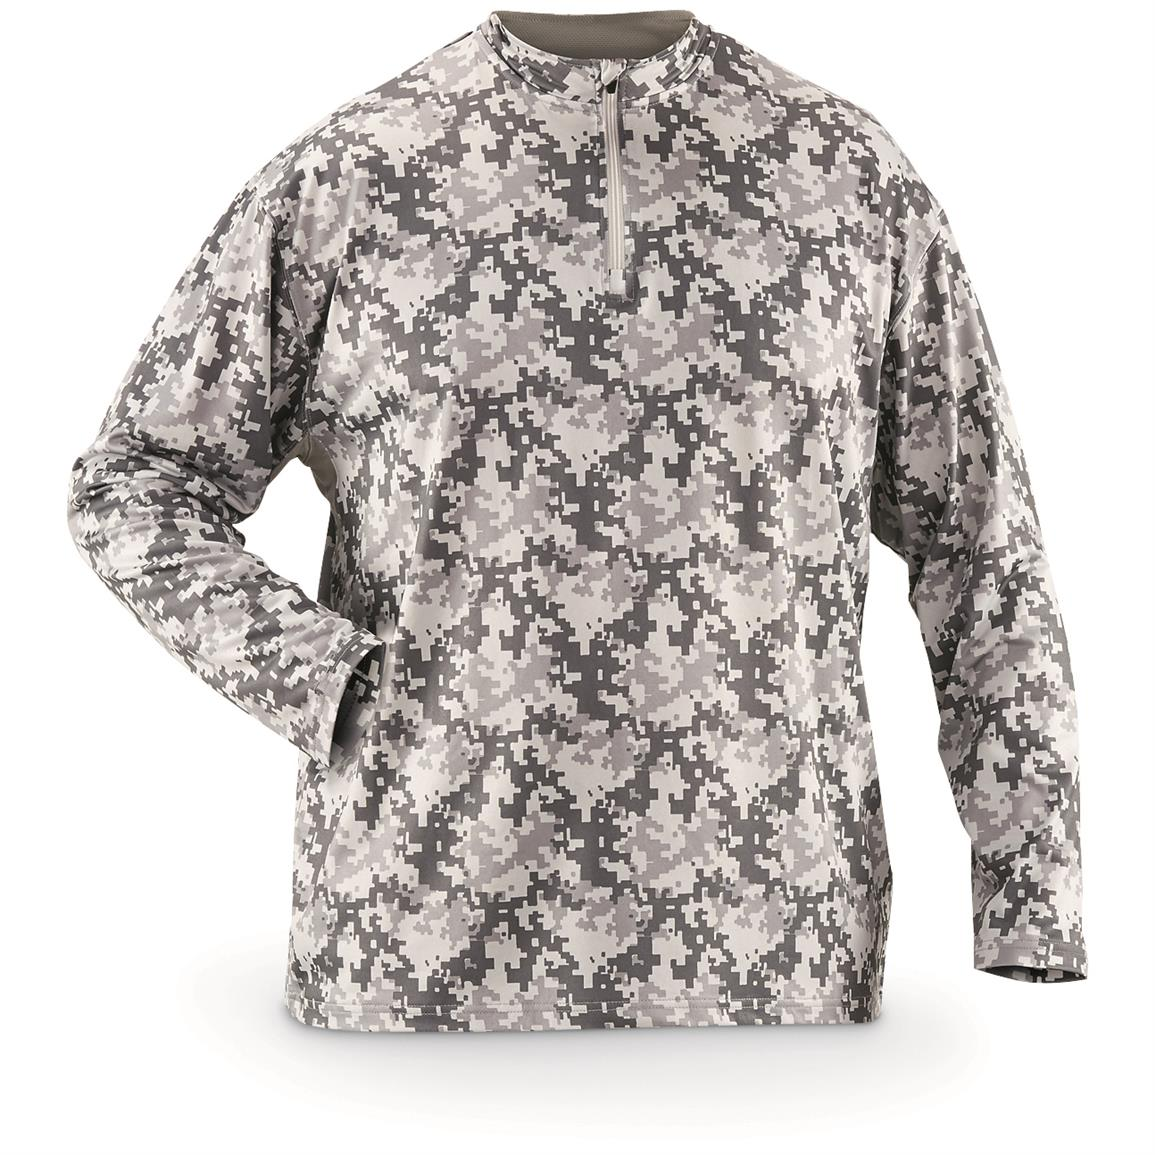 Guide Gear Men's Performance Fishing Pullover Quarter Zip Shirt, Gray Digi Camo